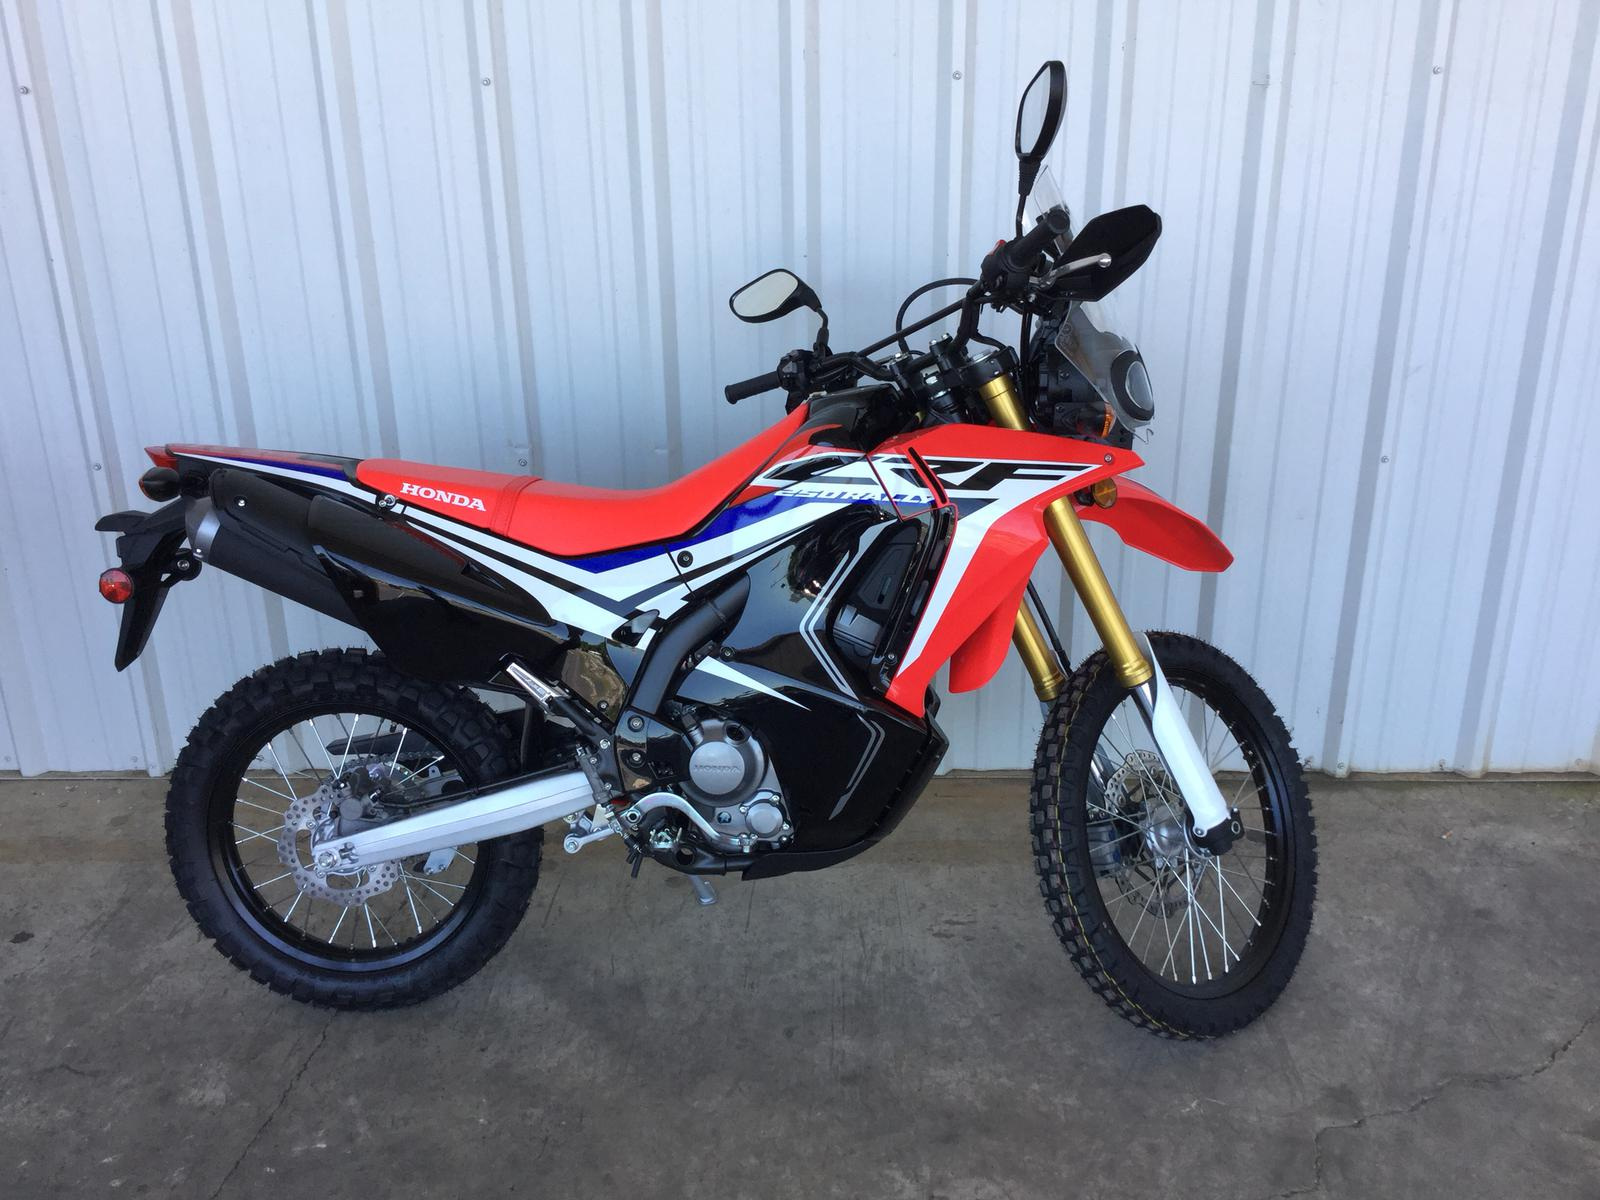 2017 honda crf250l rally for sale in gastonia, nc | ms powersports